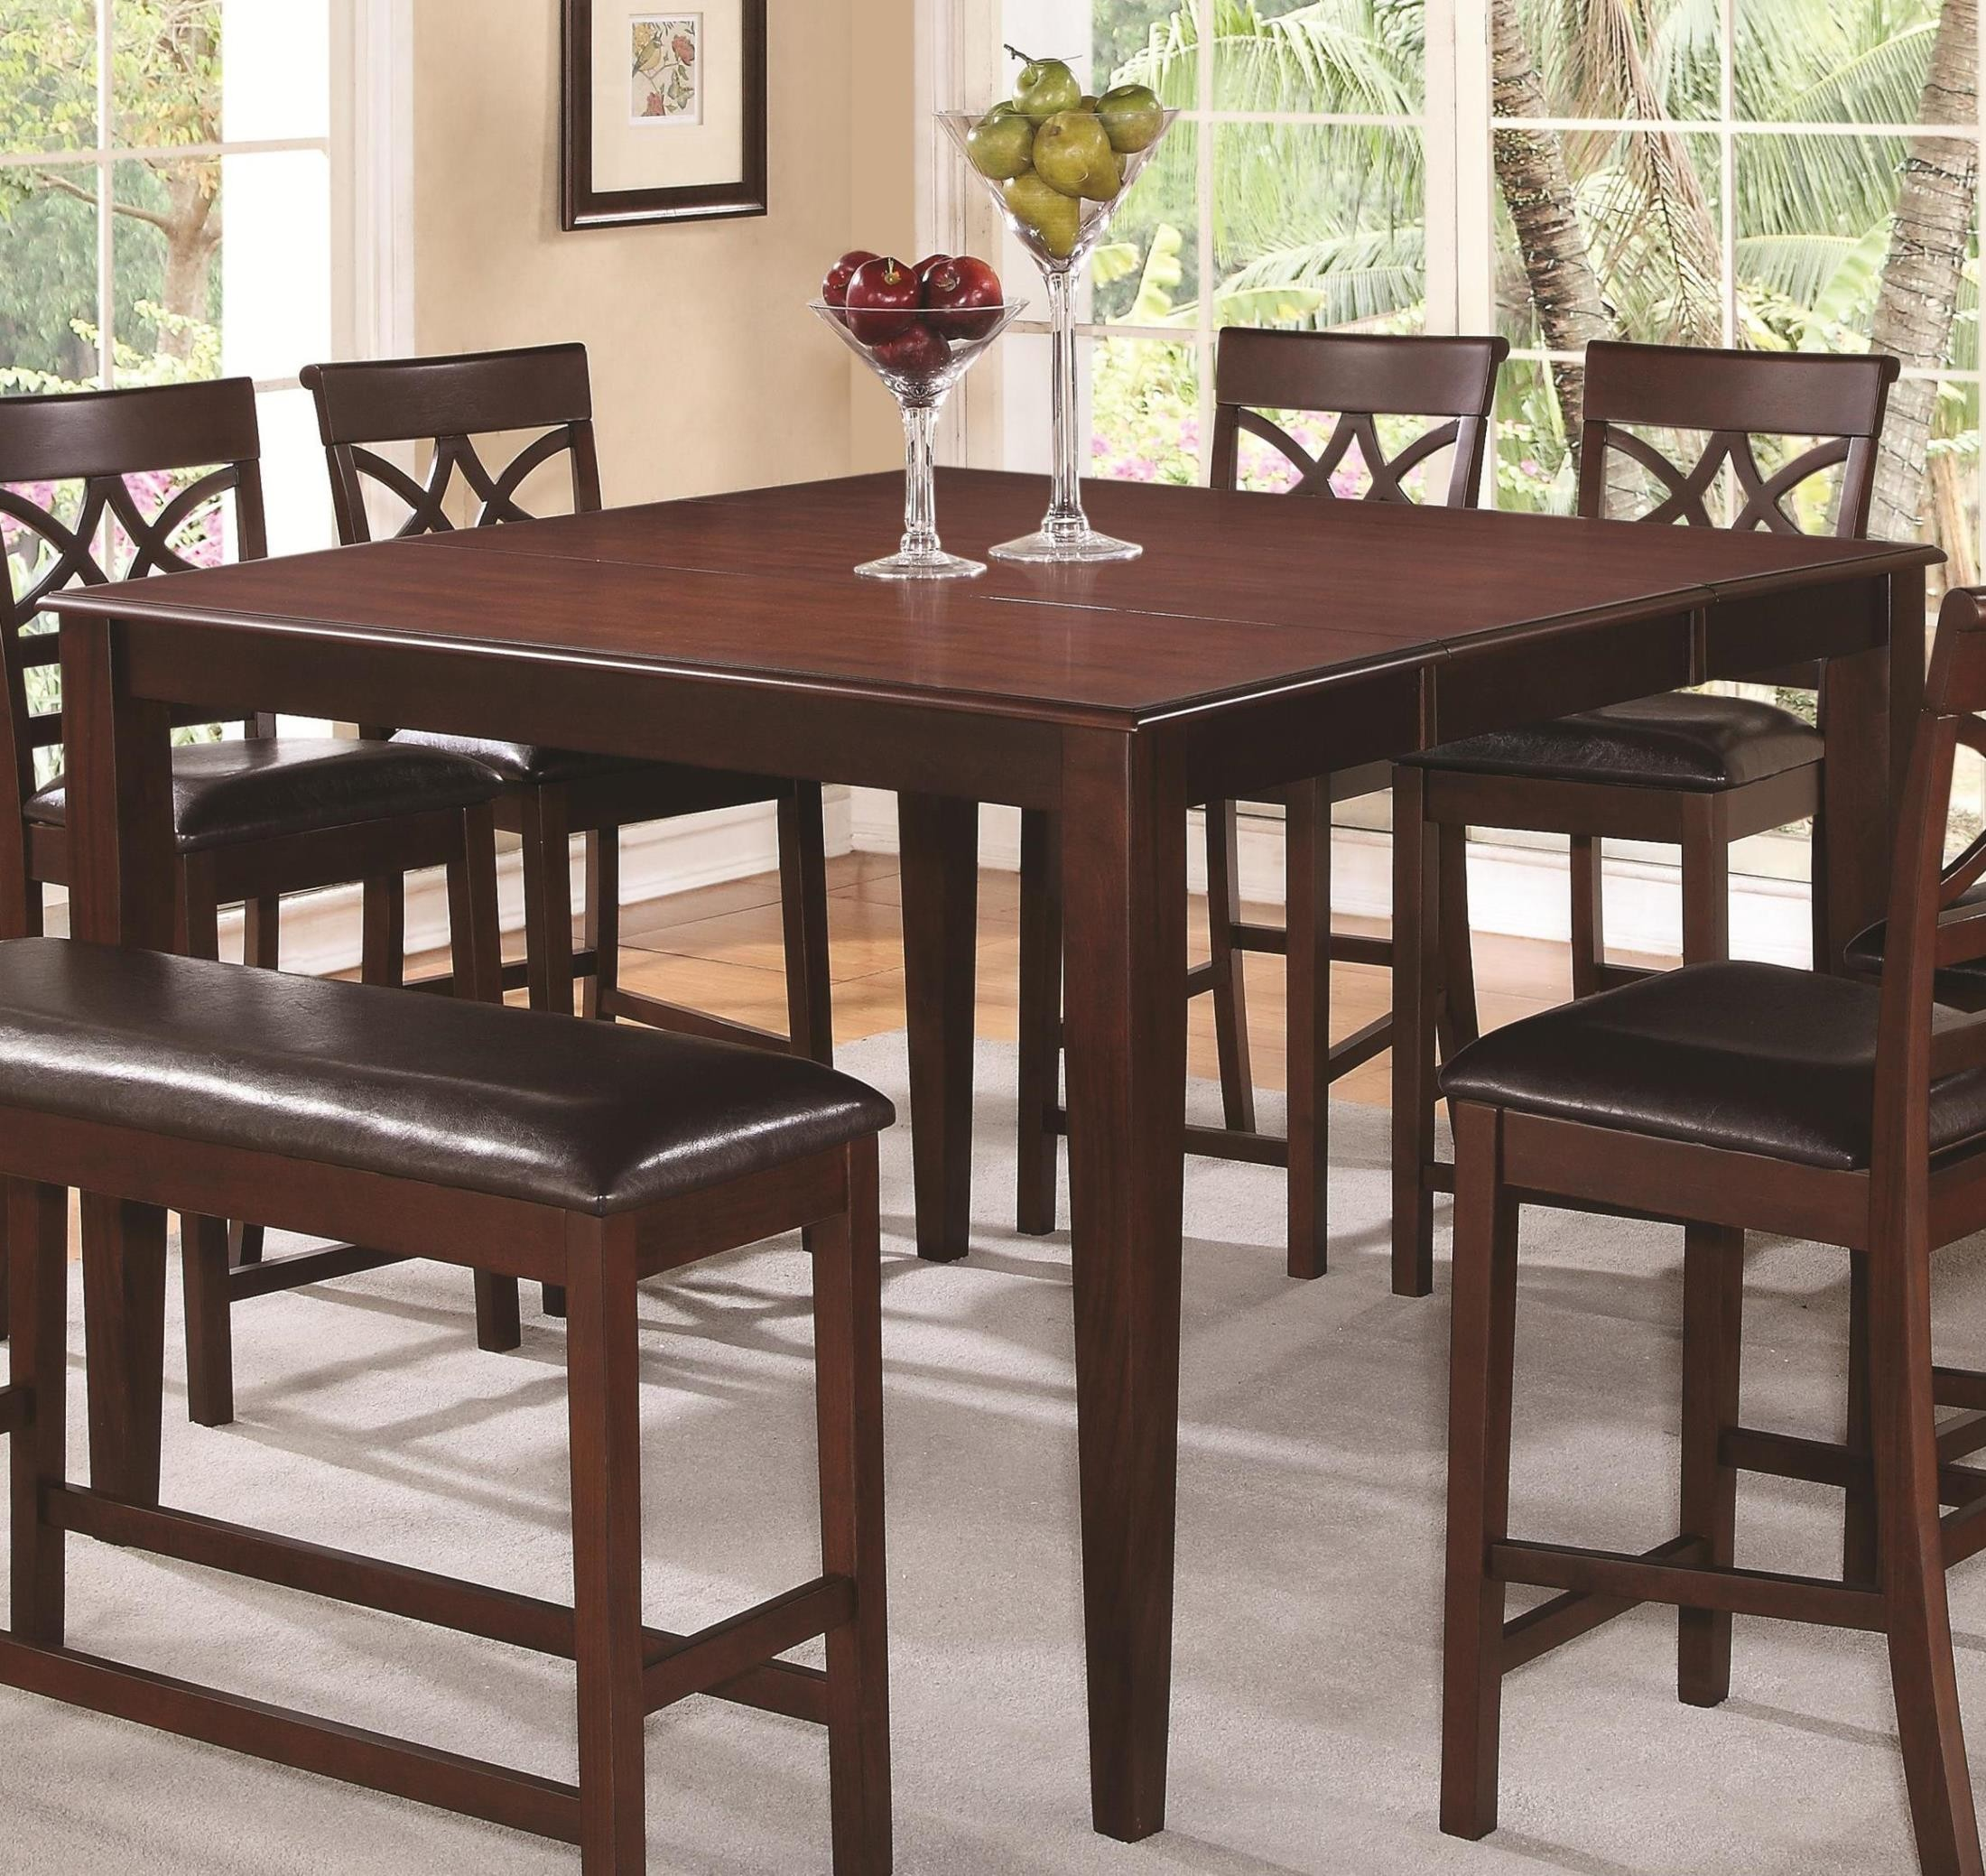 Dunham Square Counter Height Extendable Dining Table From Coaster